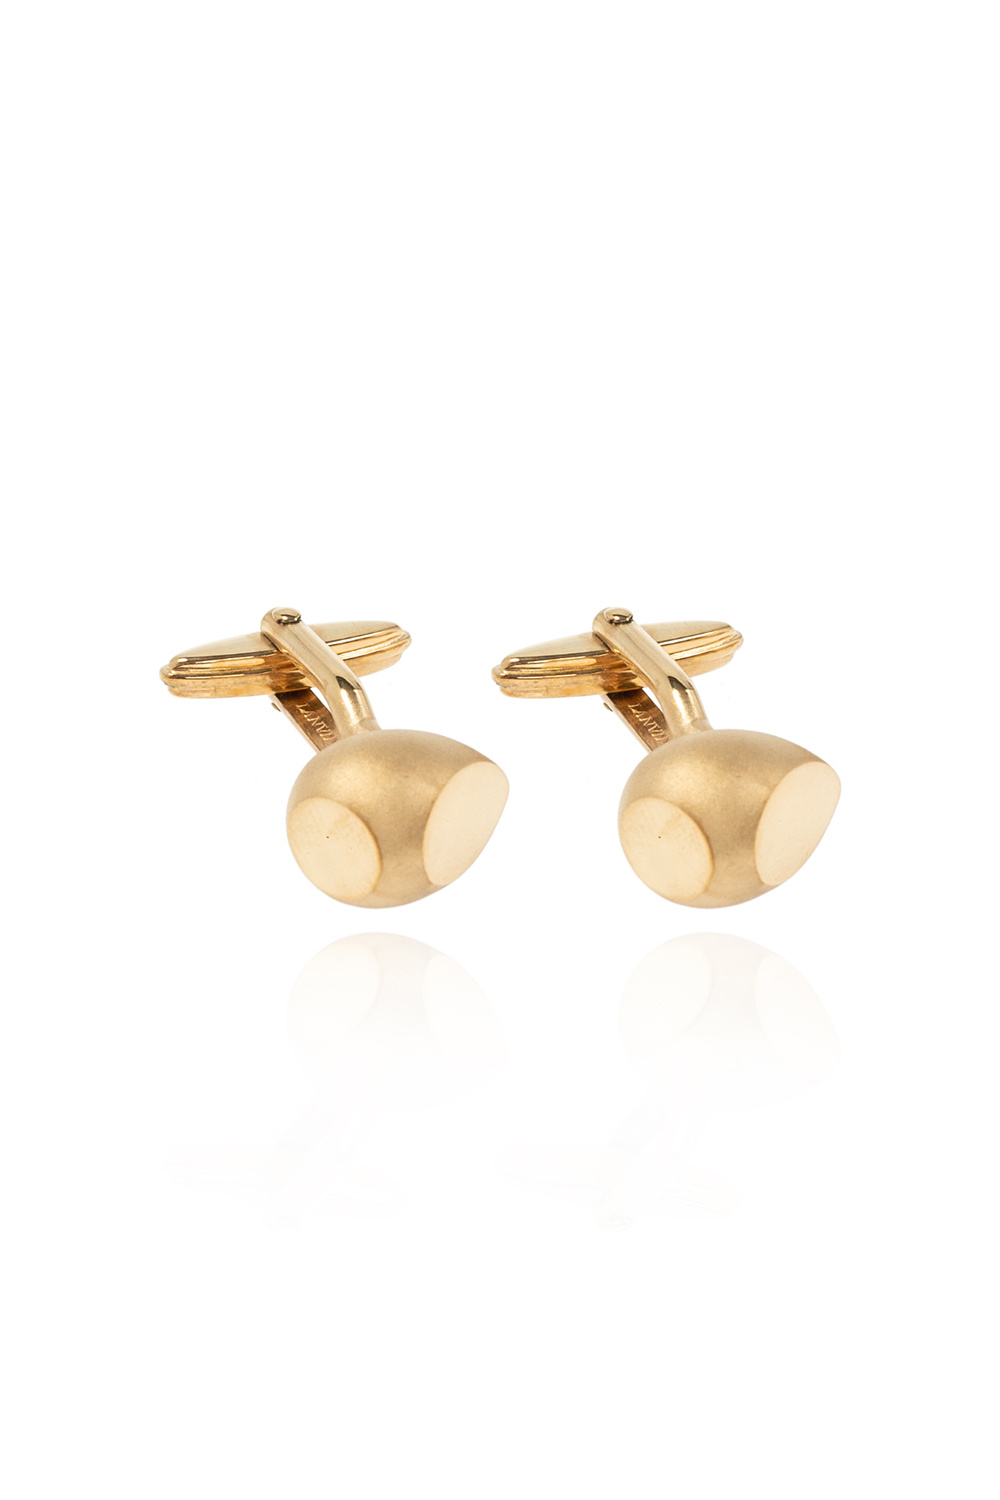 Lanvin Cuff links with logo